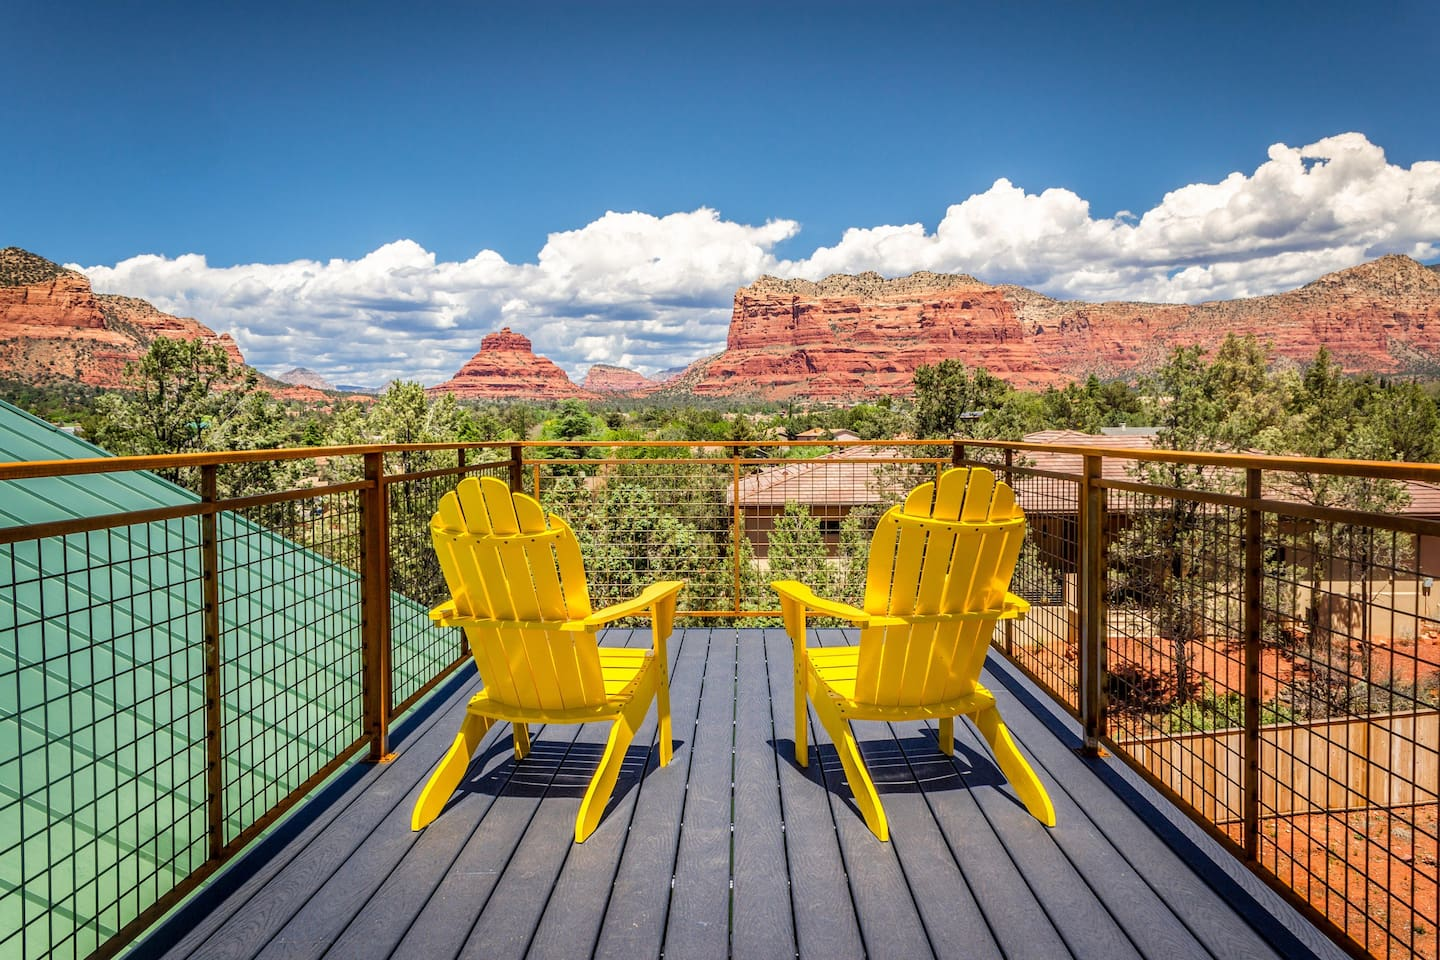 The Skydeck at the Sedona Dream Maker